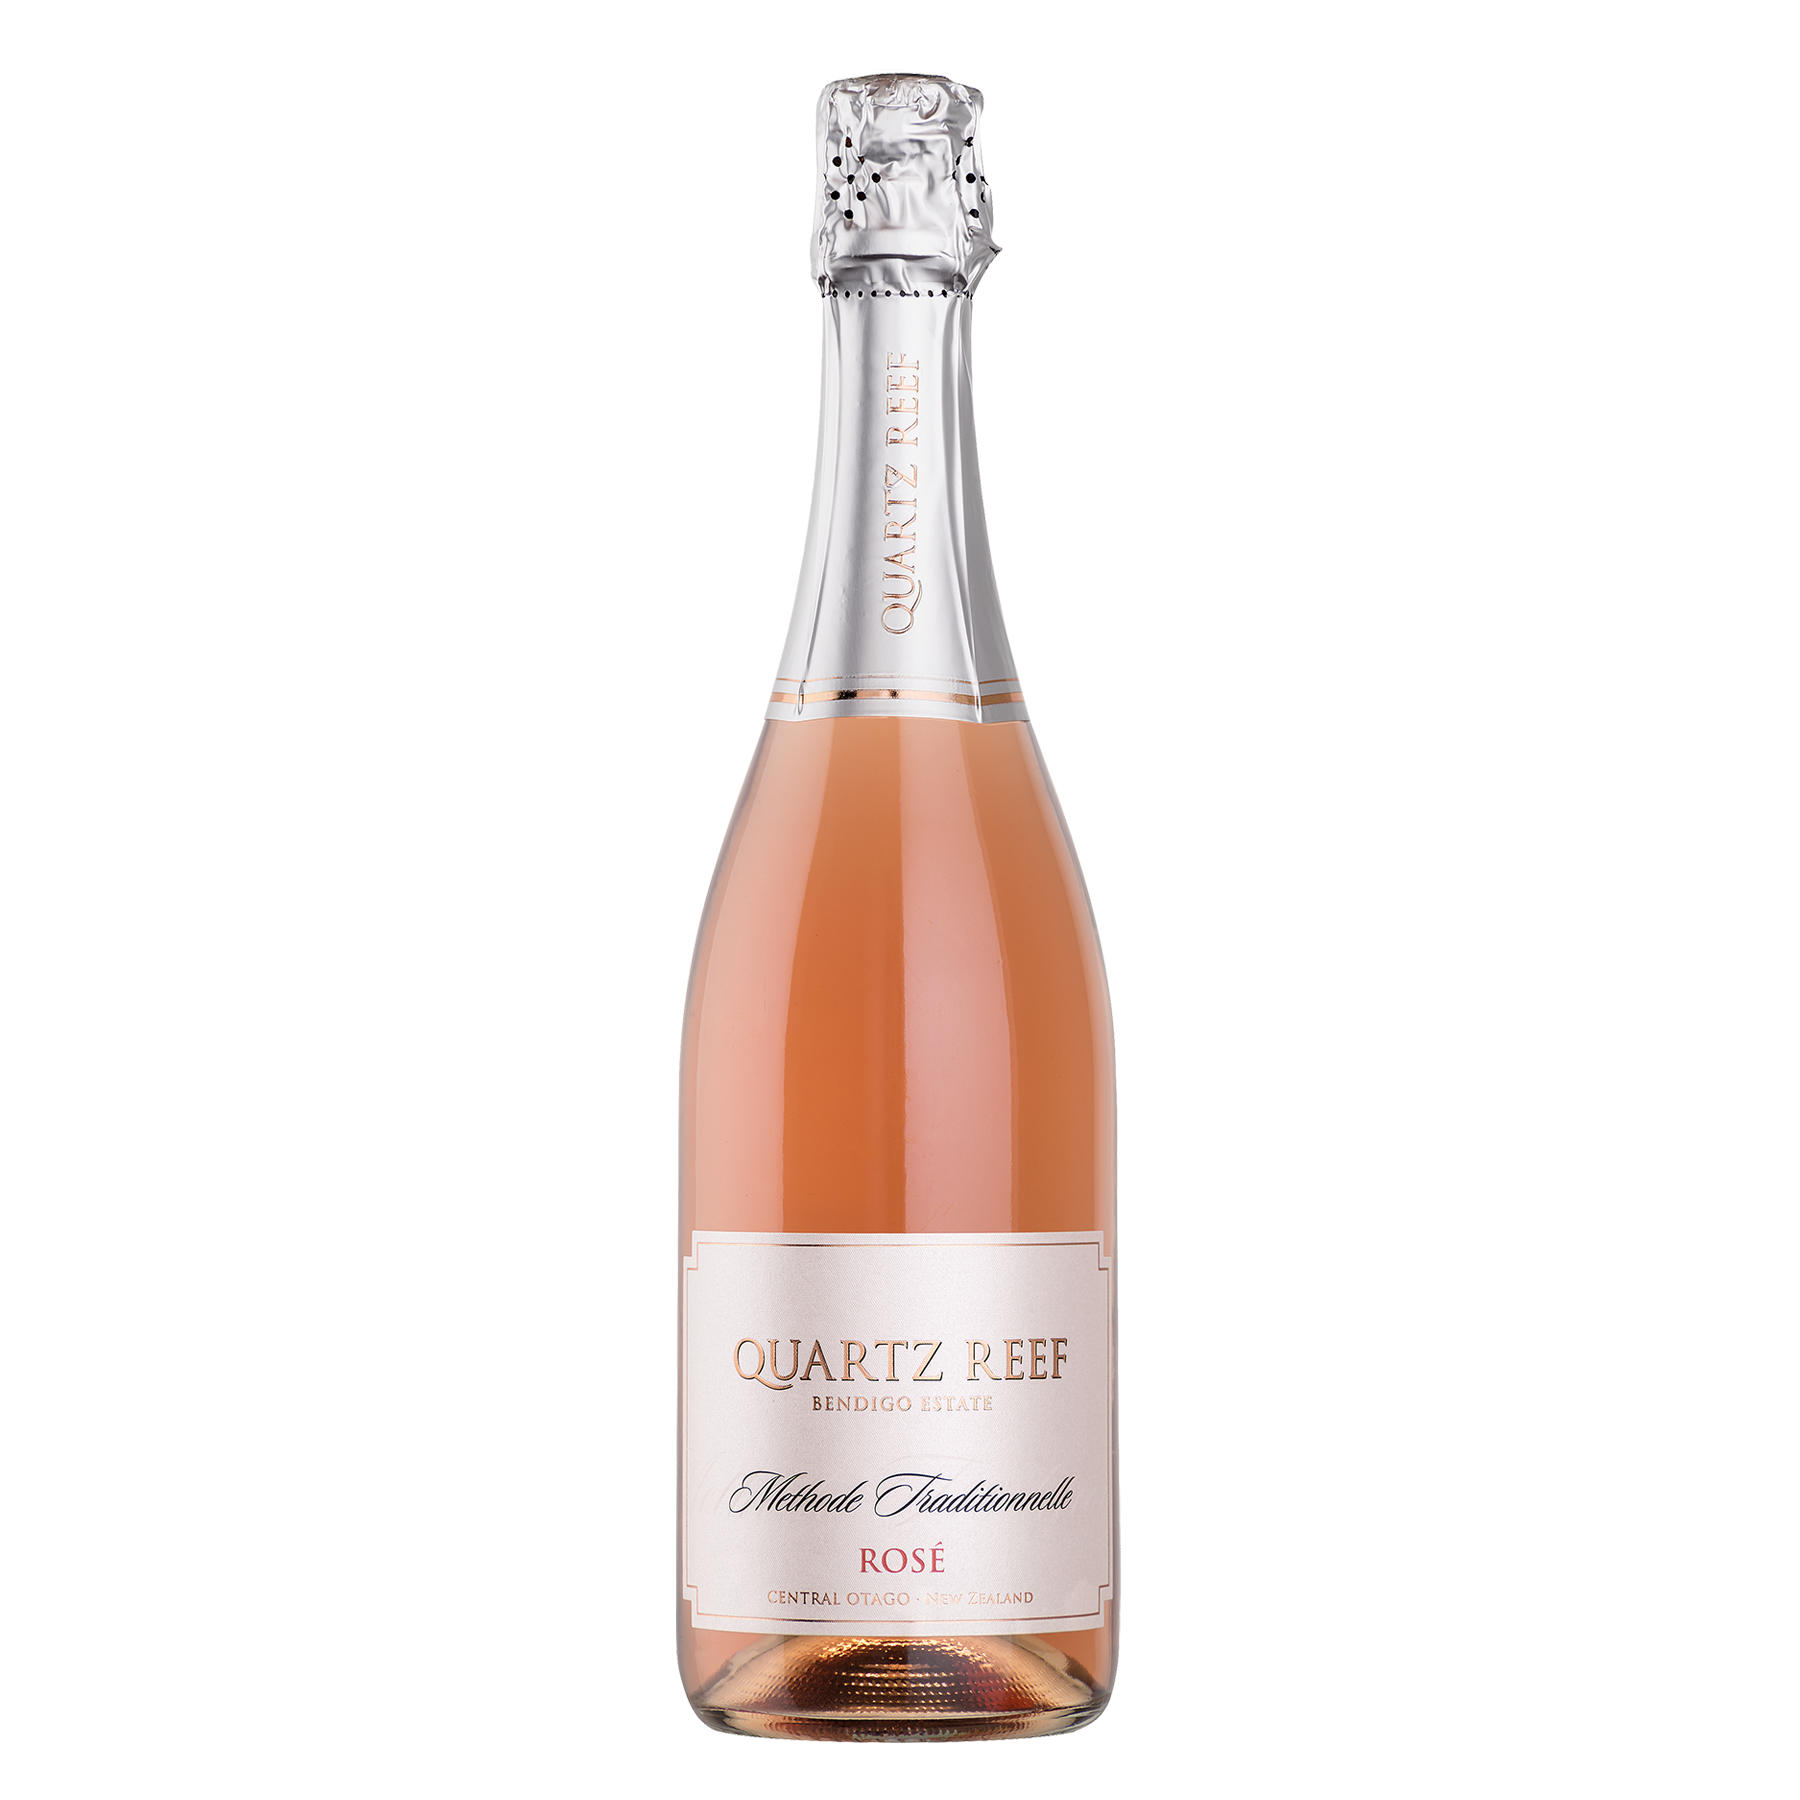 Quartz Reef Methode Traditionelle Rosé NV 750ml